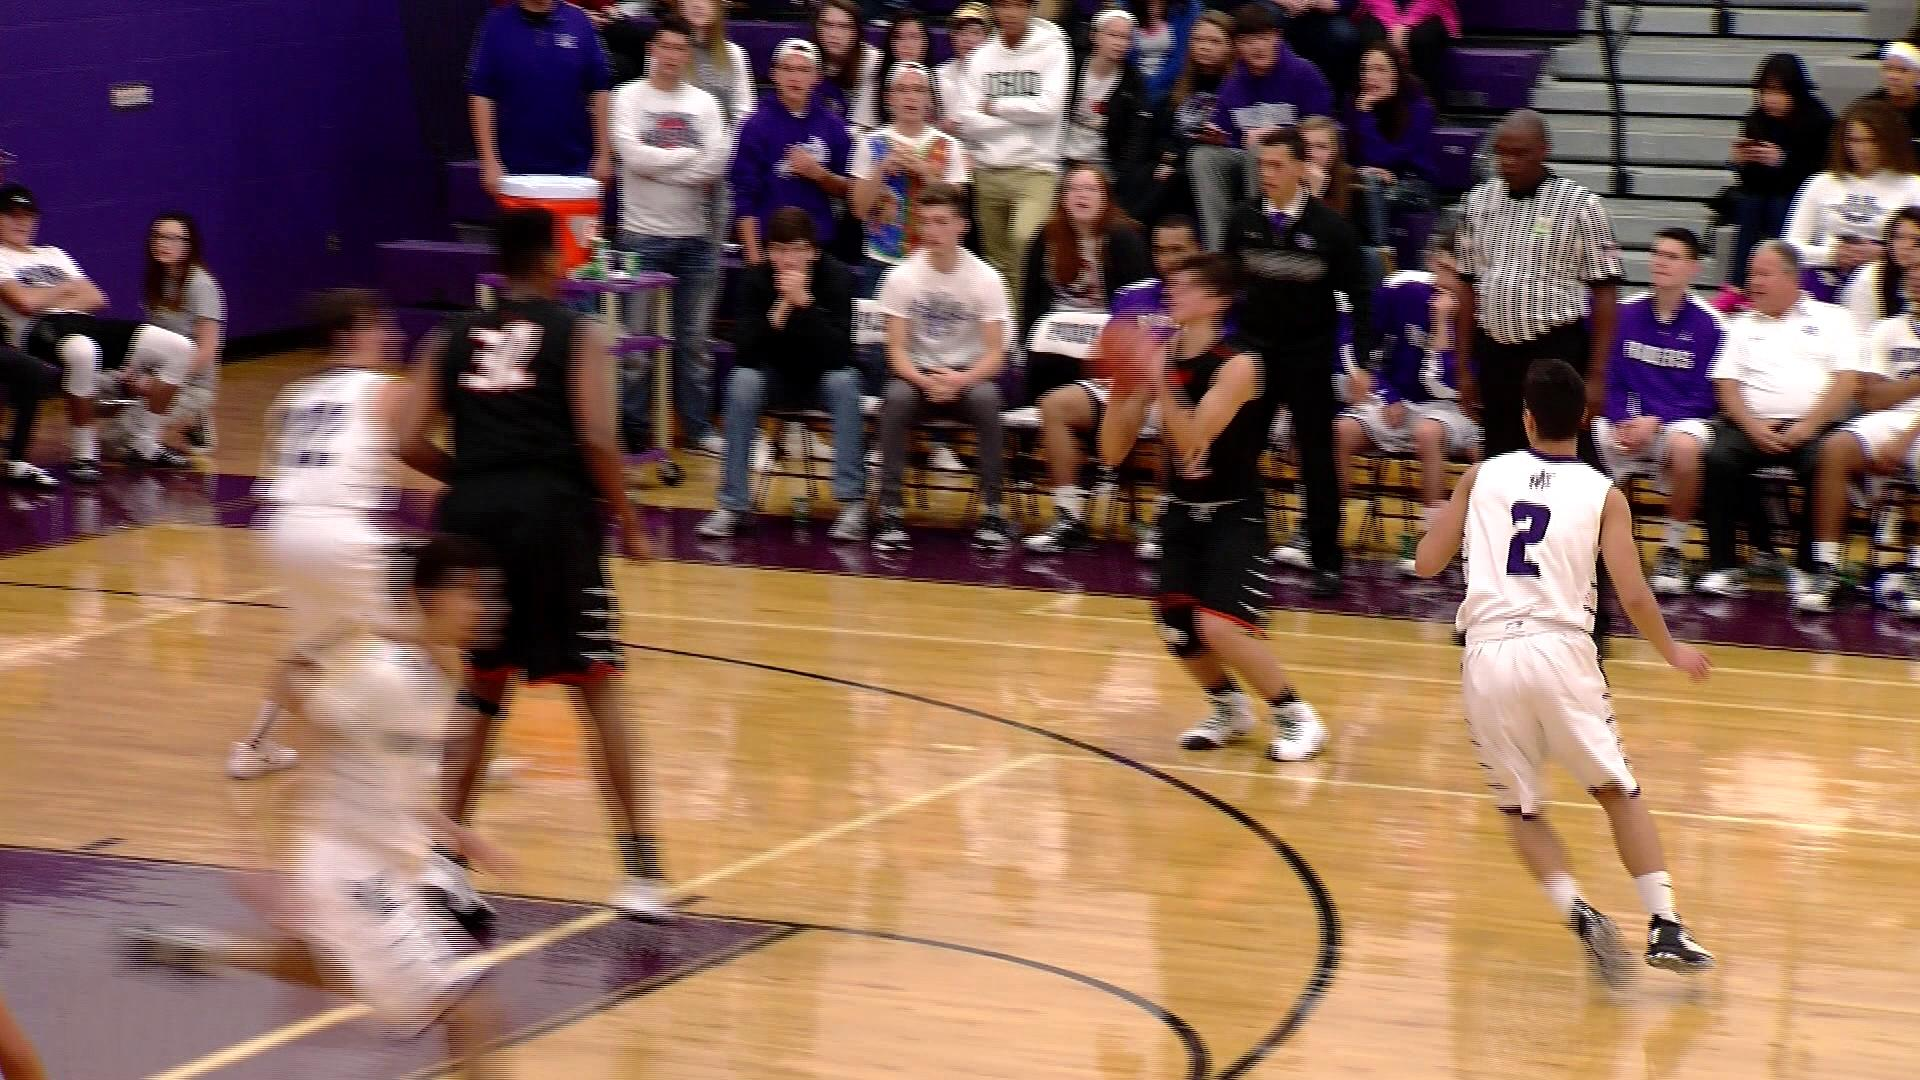 12.10.16 Video- Linsly vs. Martins Ferry- high school boys basketball